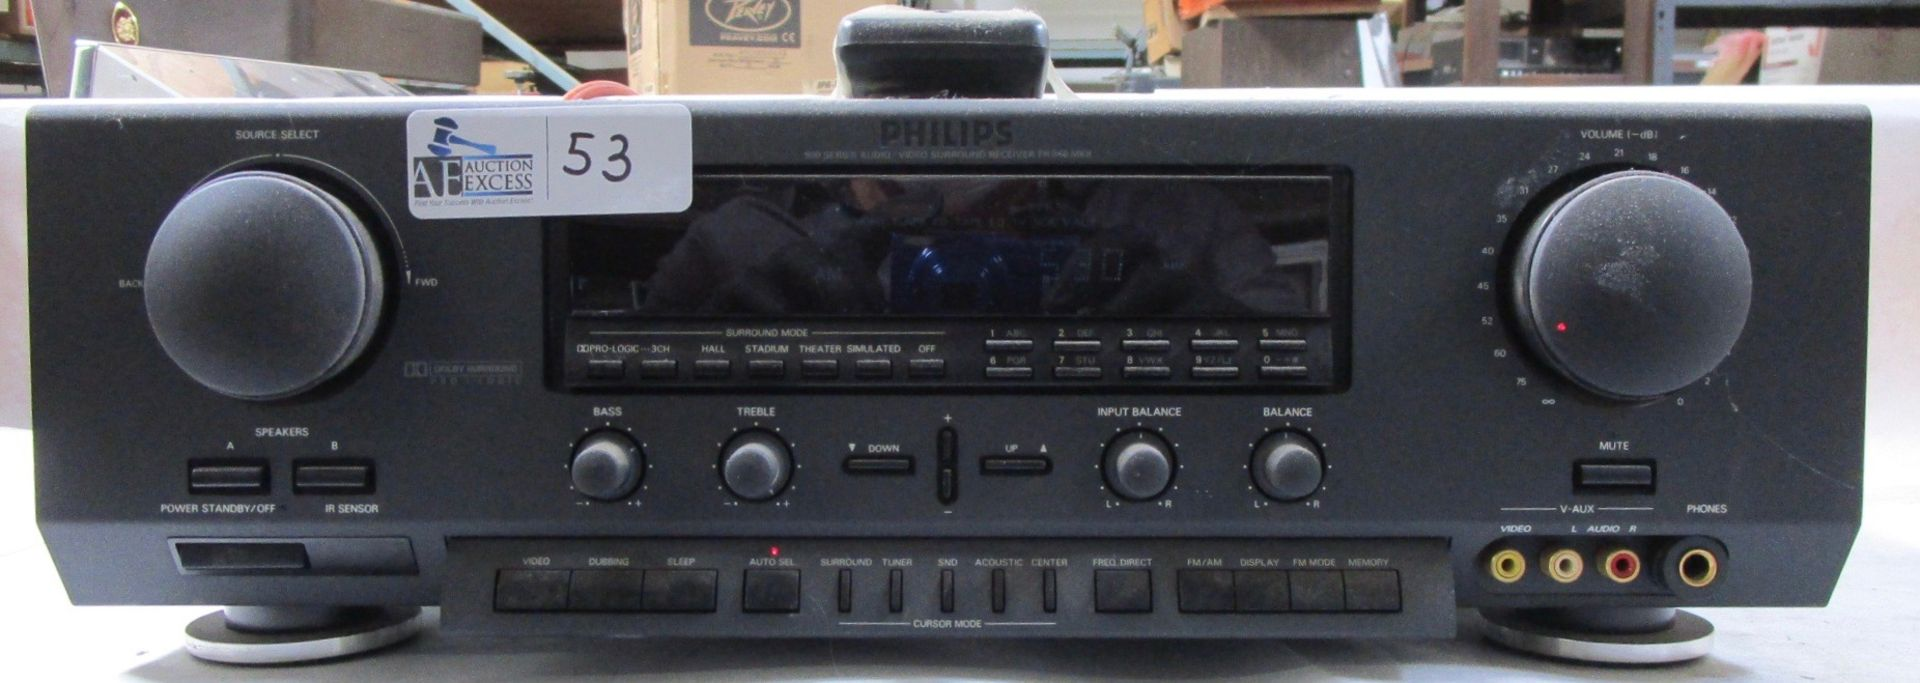 Lot 53 - PHILIPS FR9401-IPO1